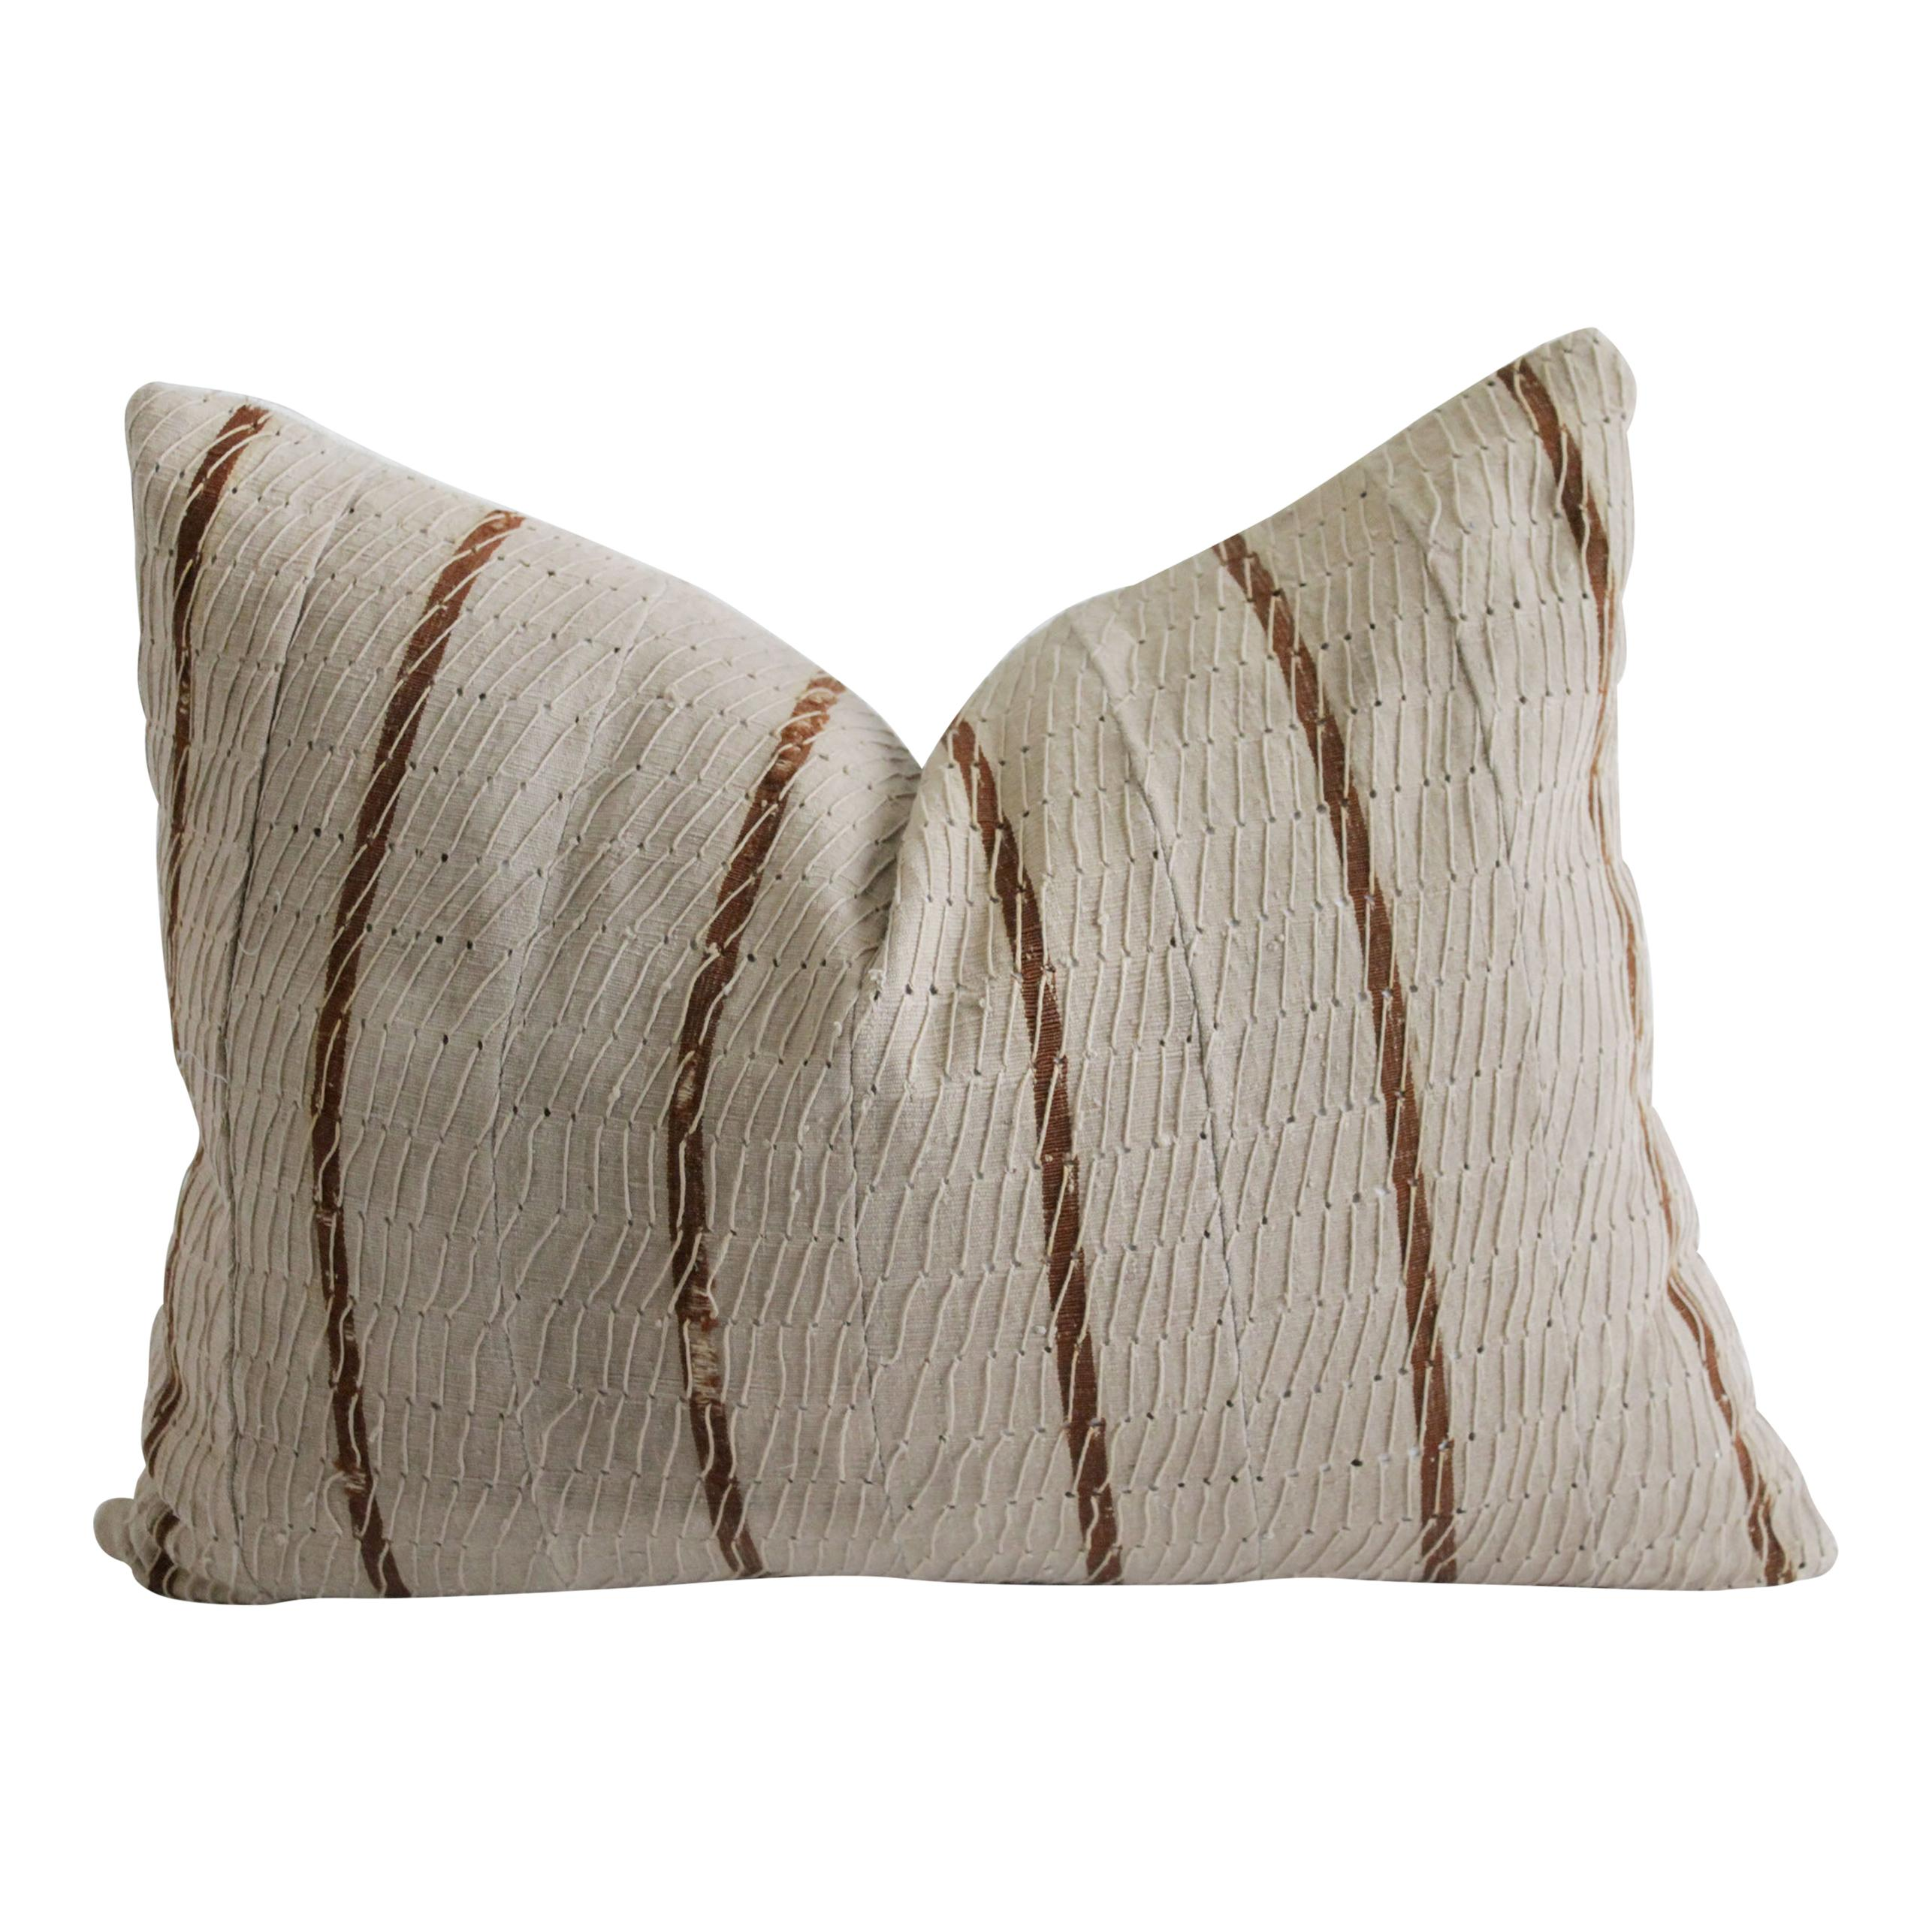 Natural woven pillow, textured cotton